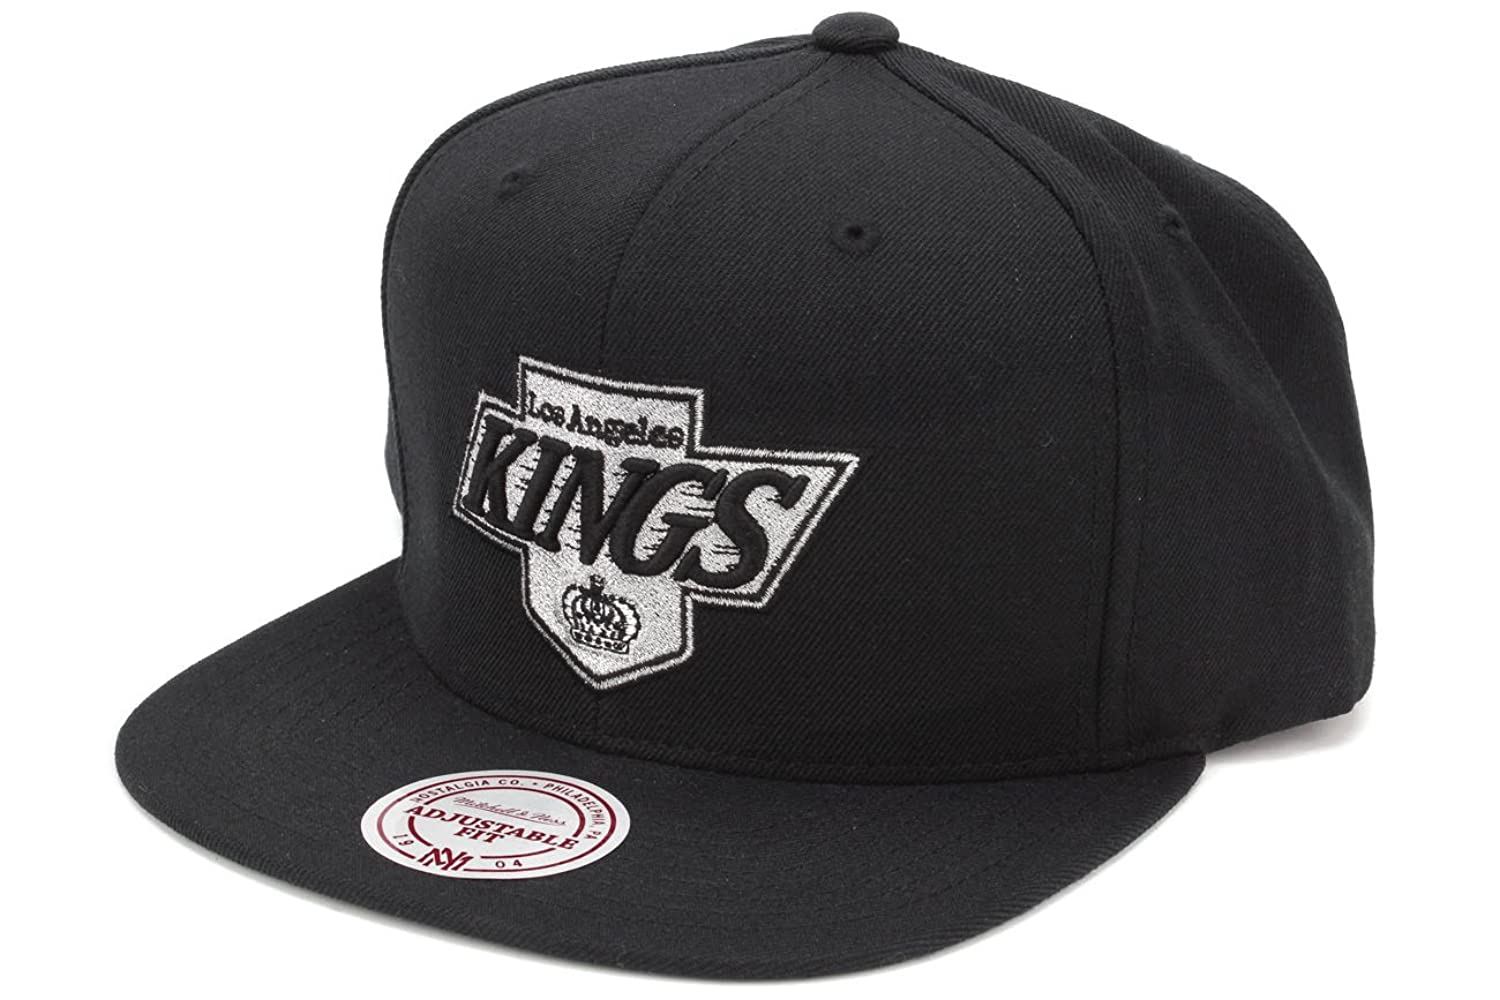 timeless design 3dce7 58ebe ... switzerland mitchell ness mens the los angeles kings logo snapback hat  5177a e8b8a